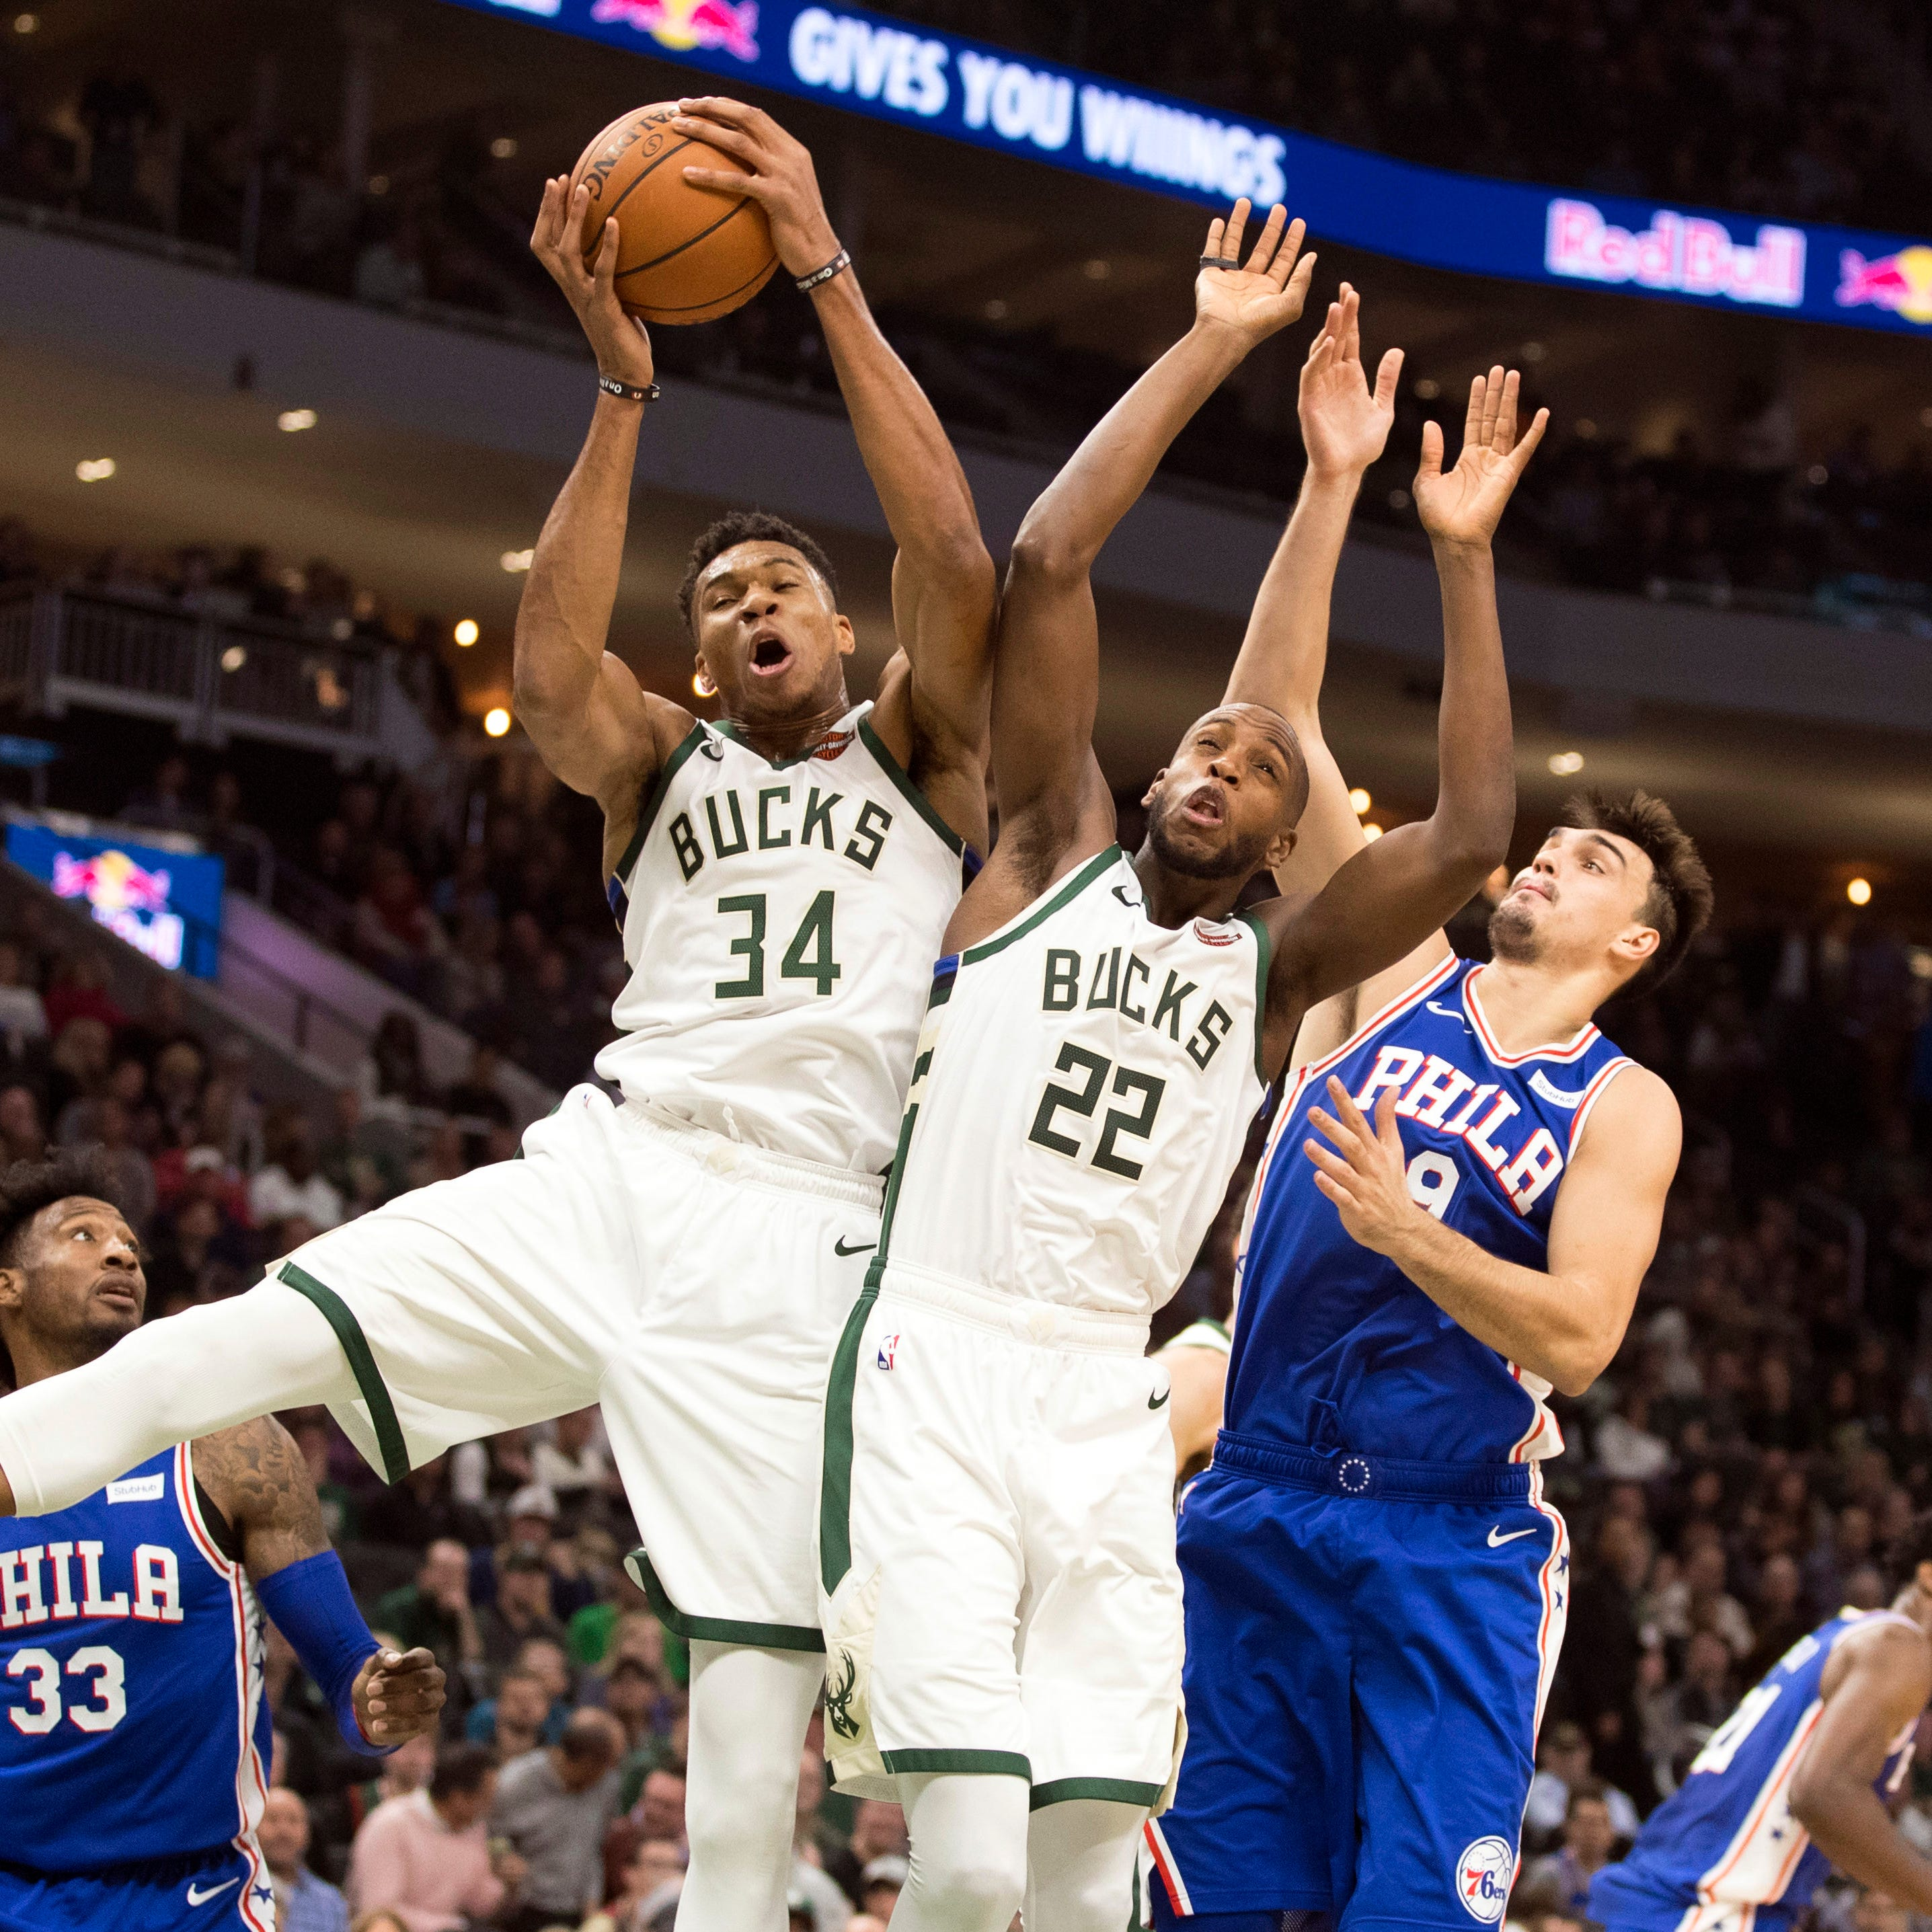 Bucks 123, 76ers 108: One shiny quarter pays big dividends